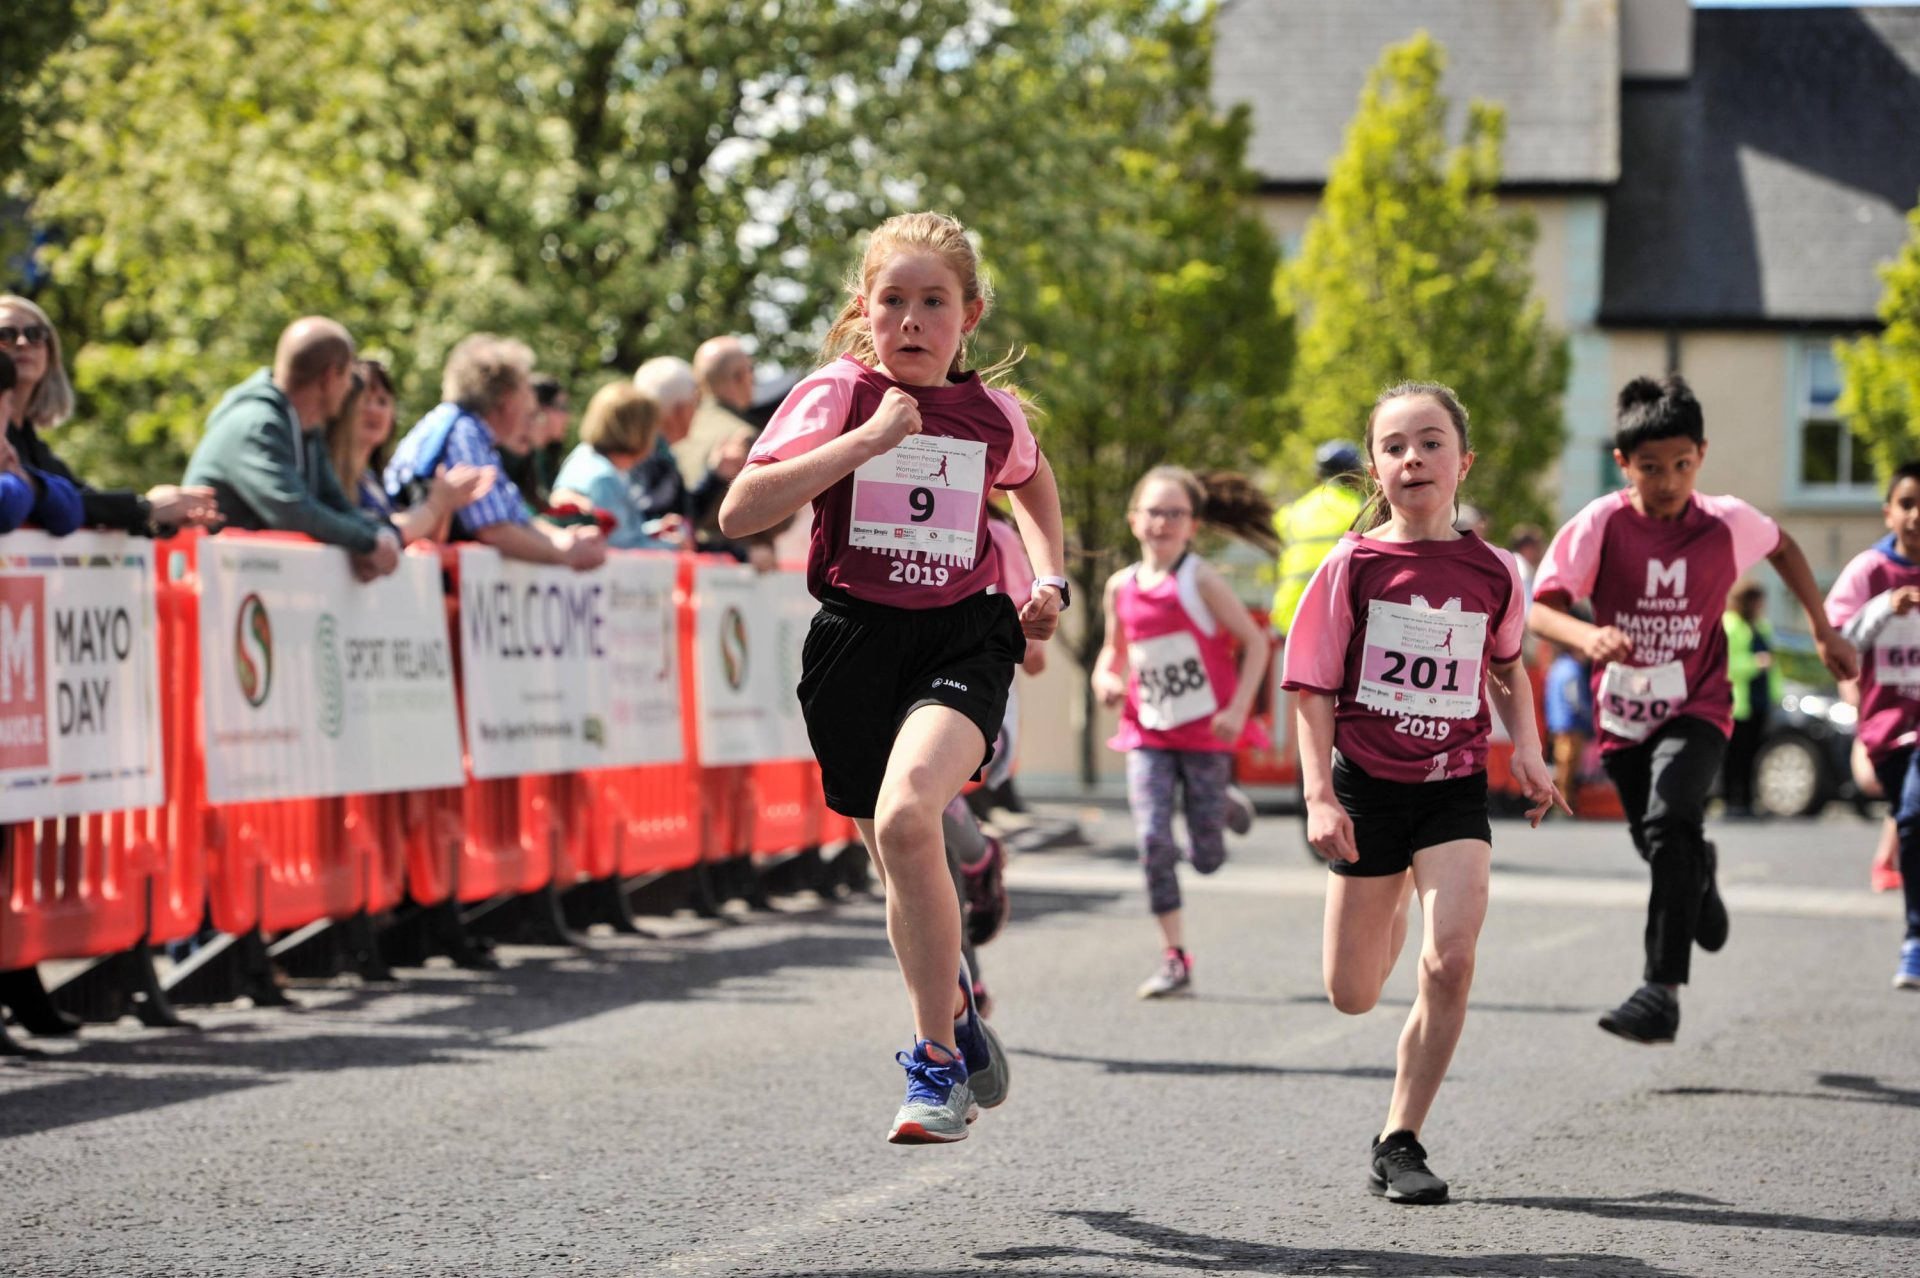 Western People — Thousands turn out for Western People mini-marathon